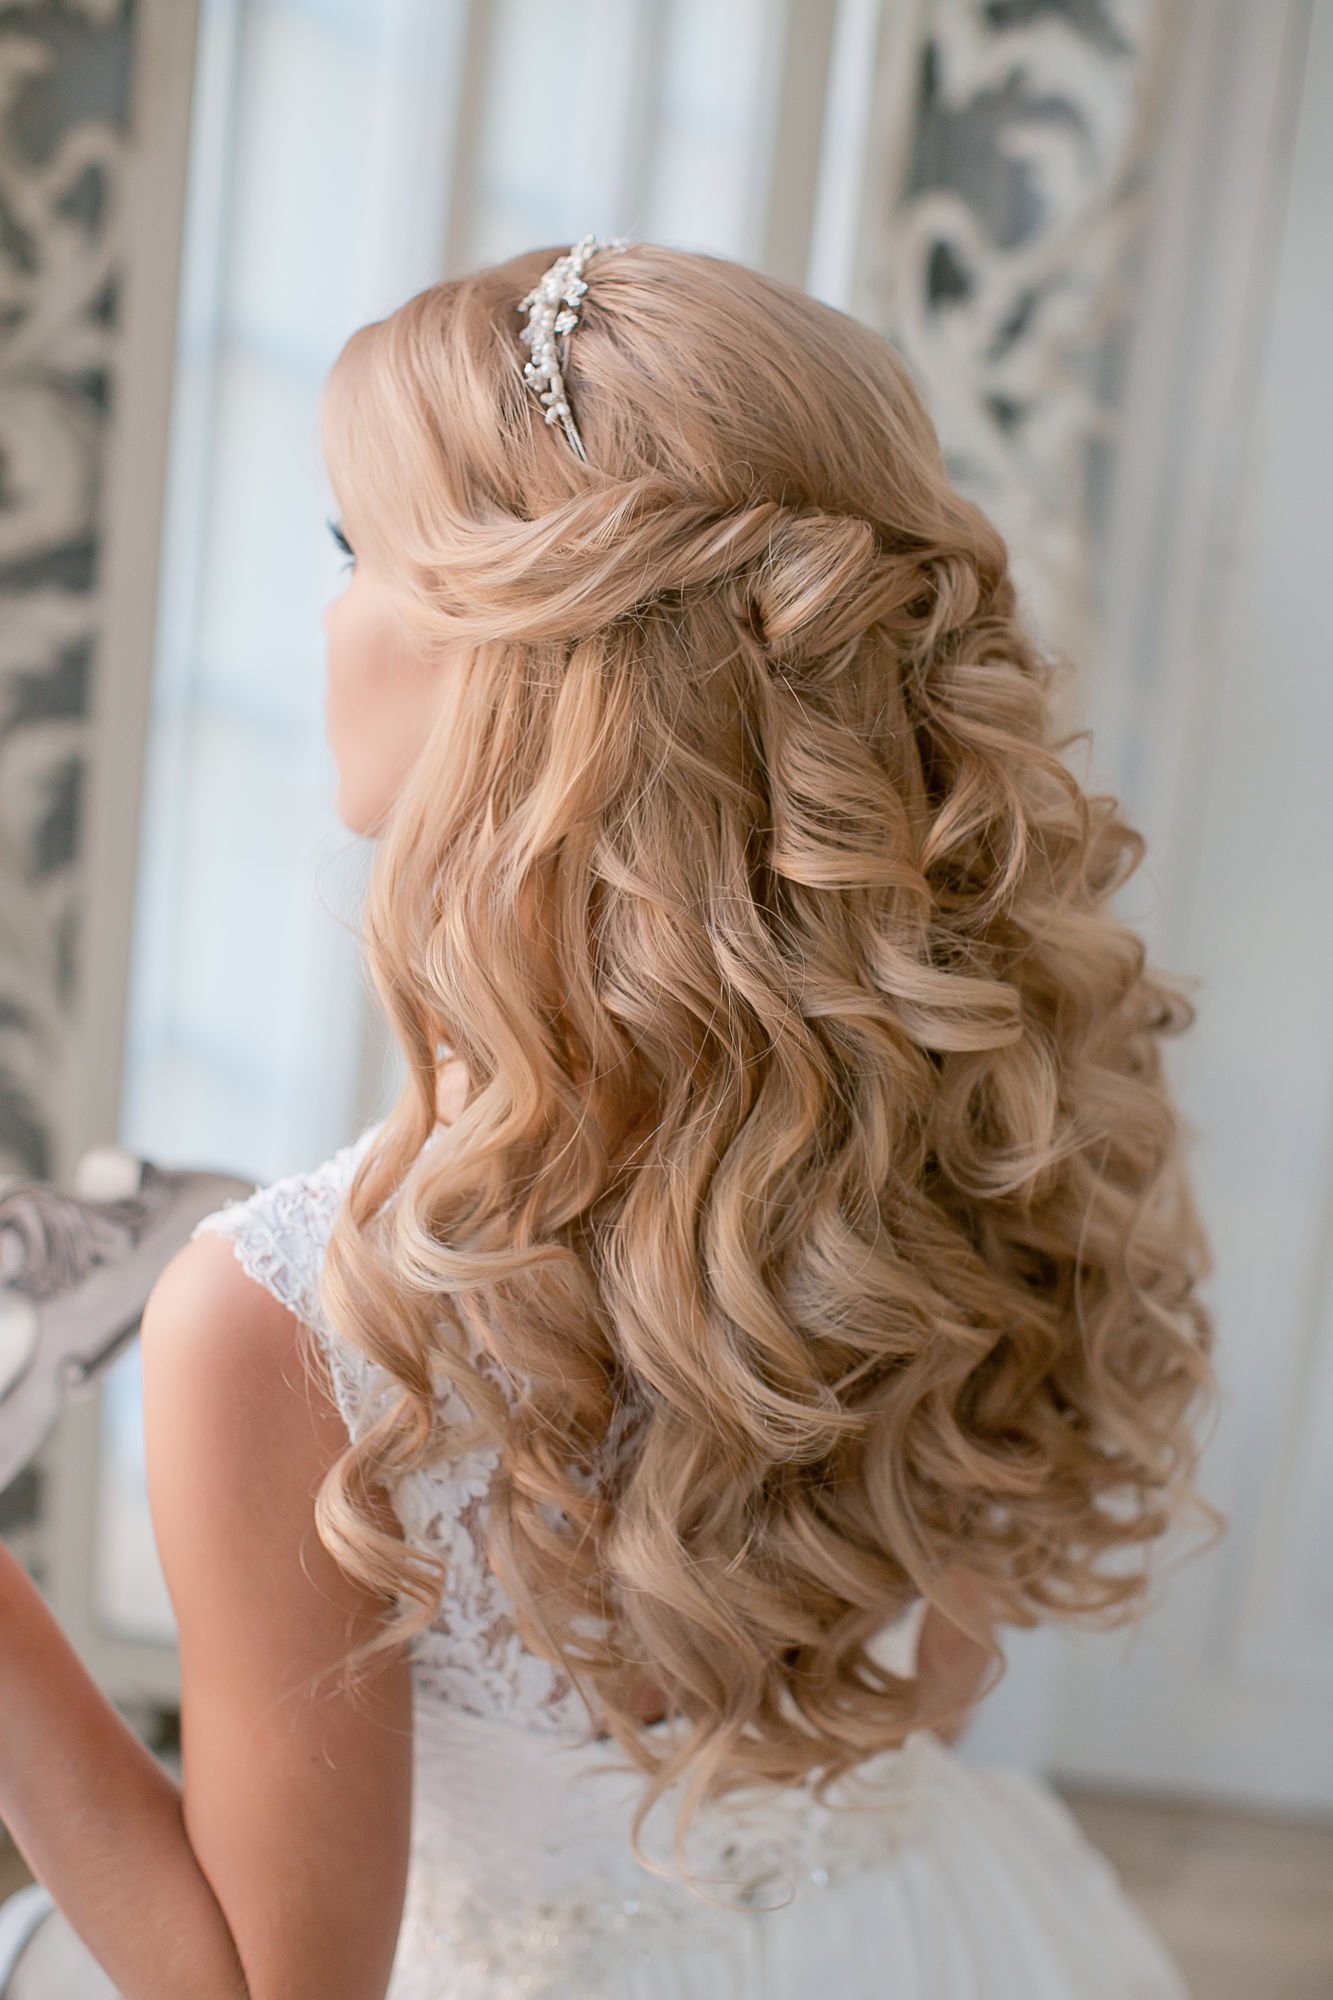 Coiffure Mariage Fille Cheveux Long Coiffure Mariage Lache Boucle